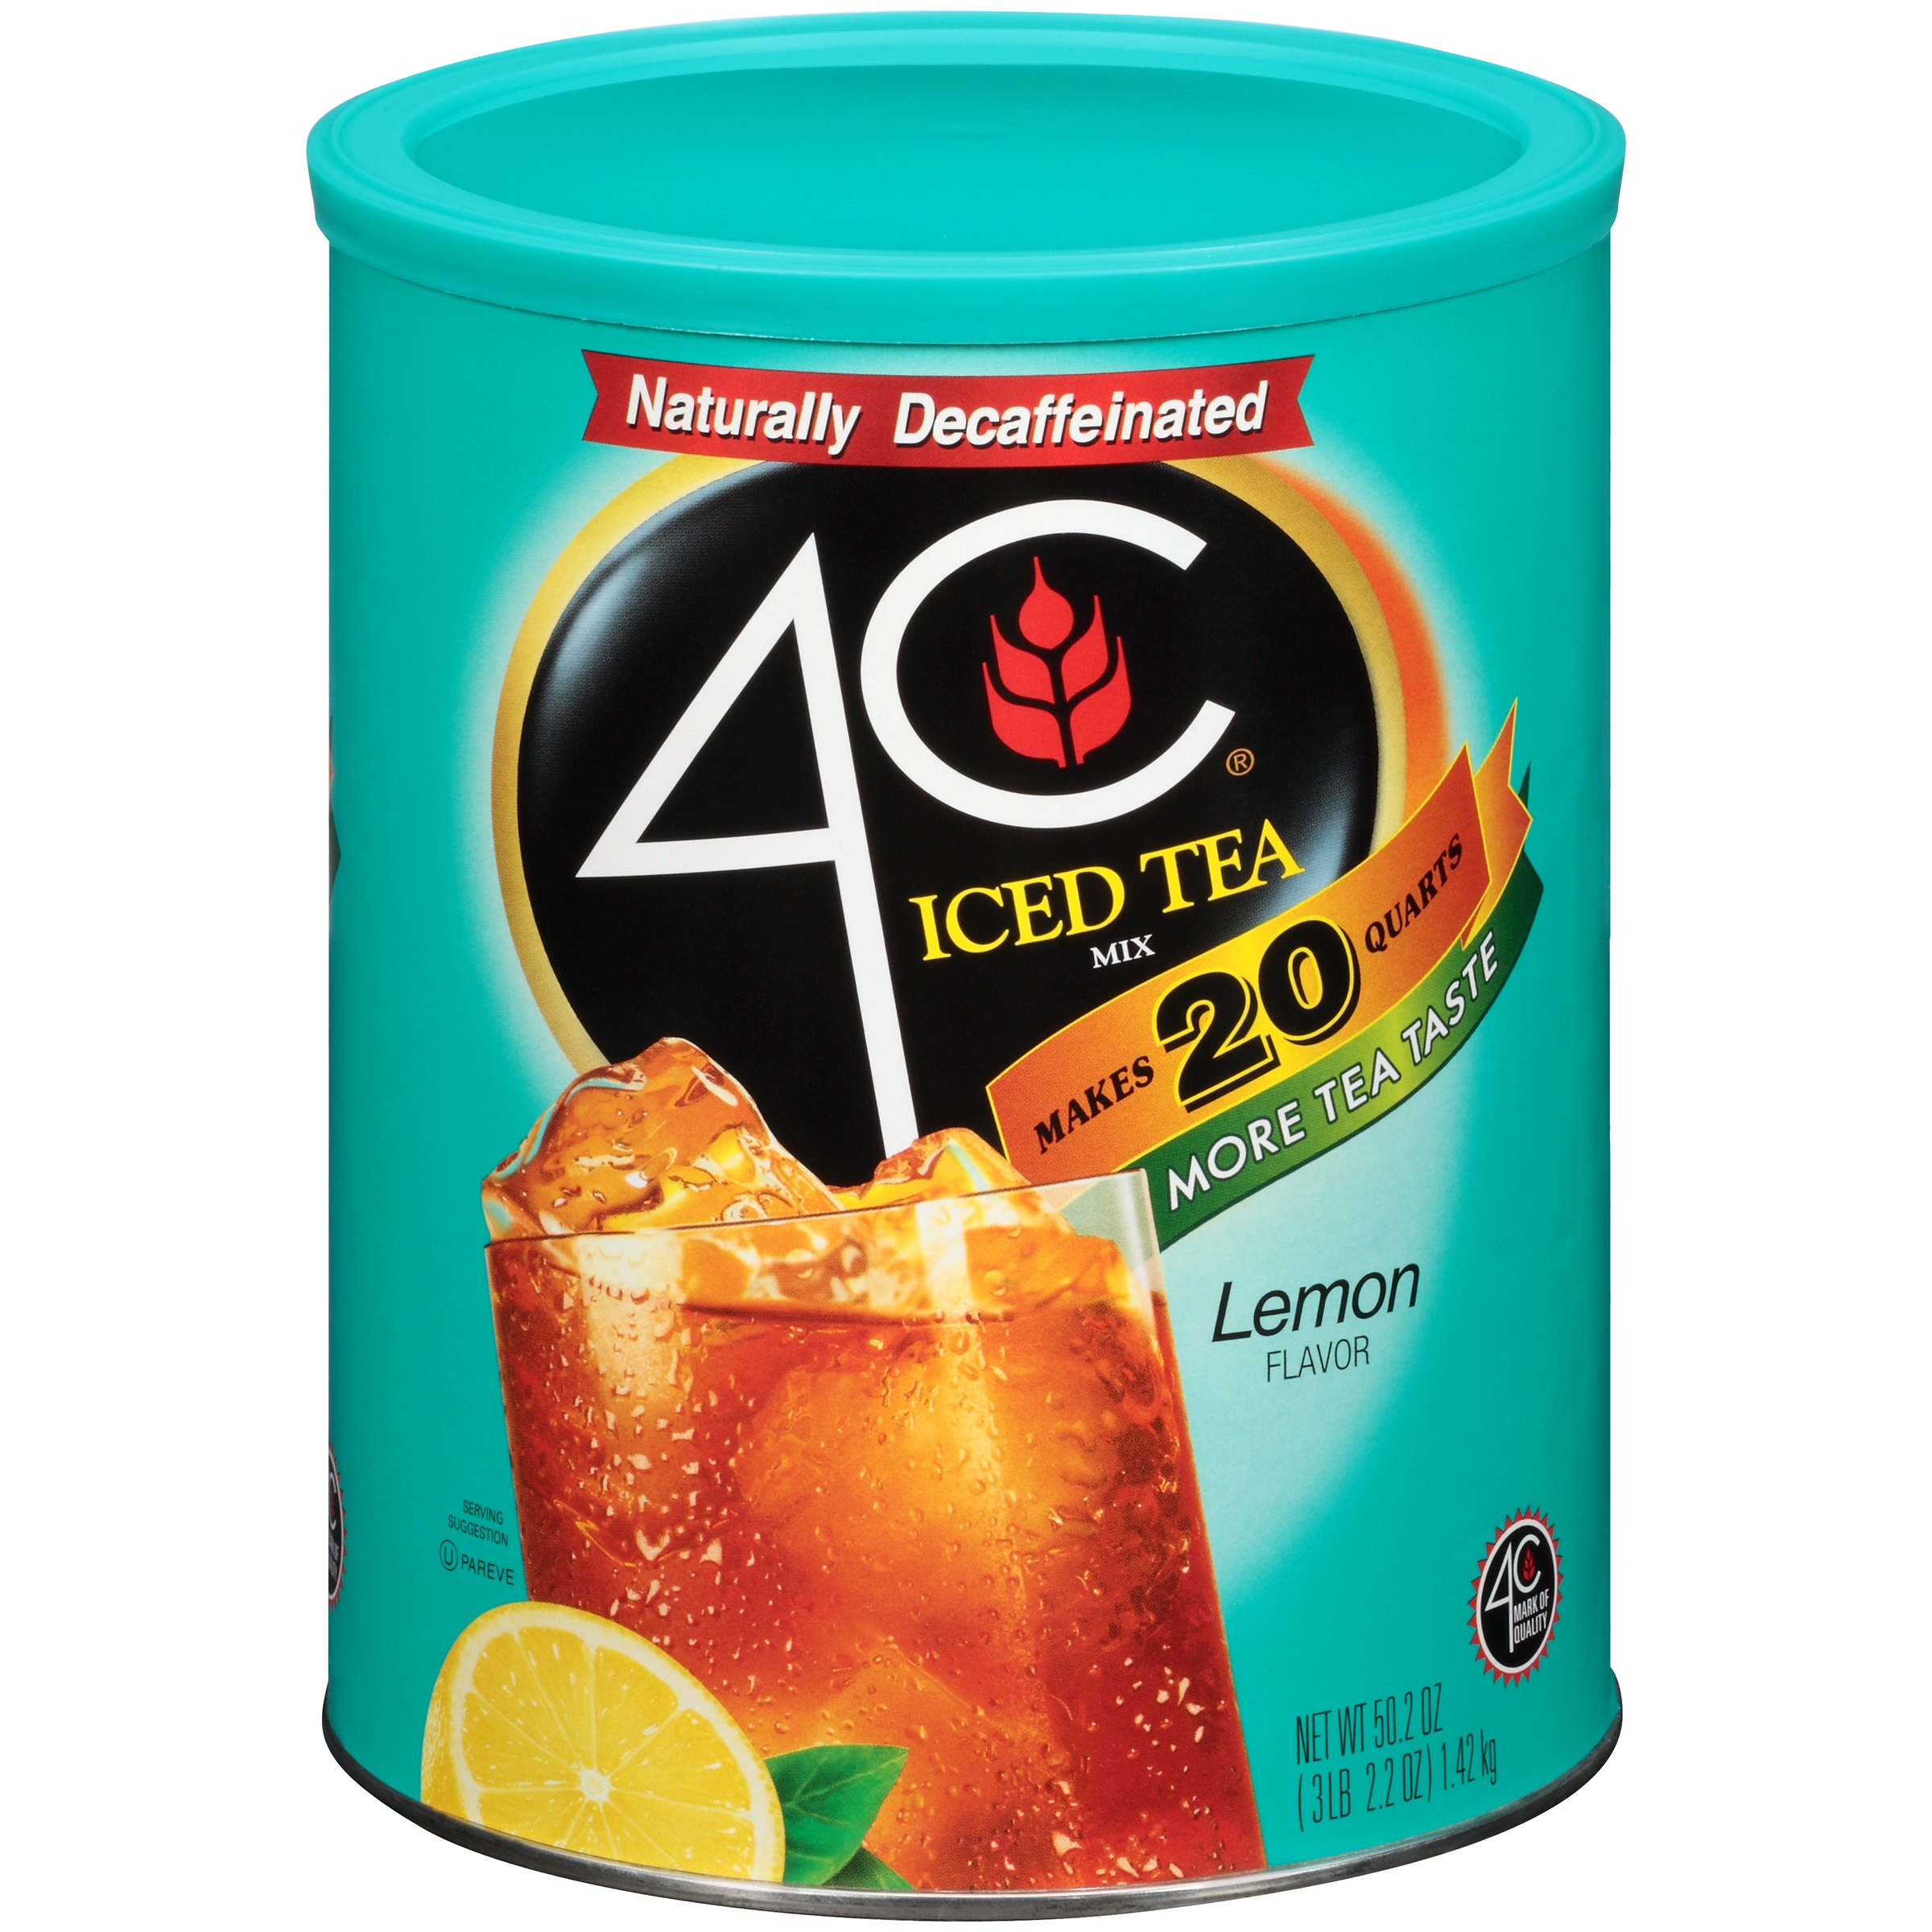 Image of 4C Drink Mix, Lemon Iced Tea, 50.2 Oz, 1 Count